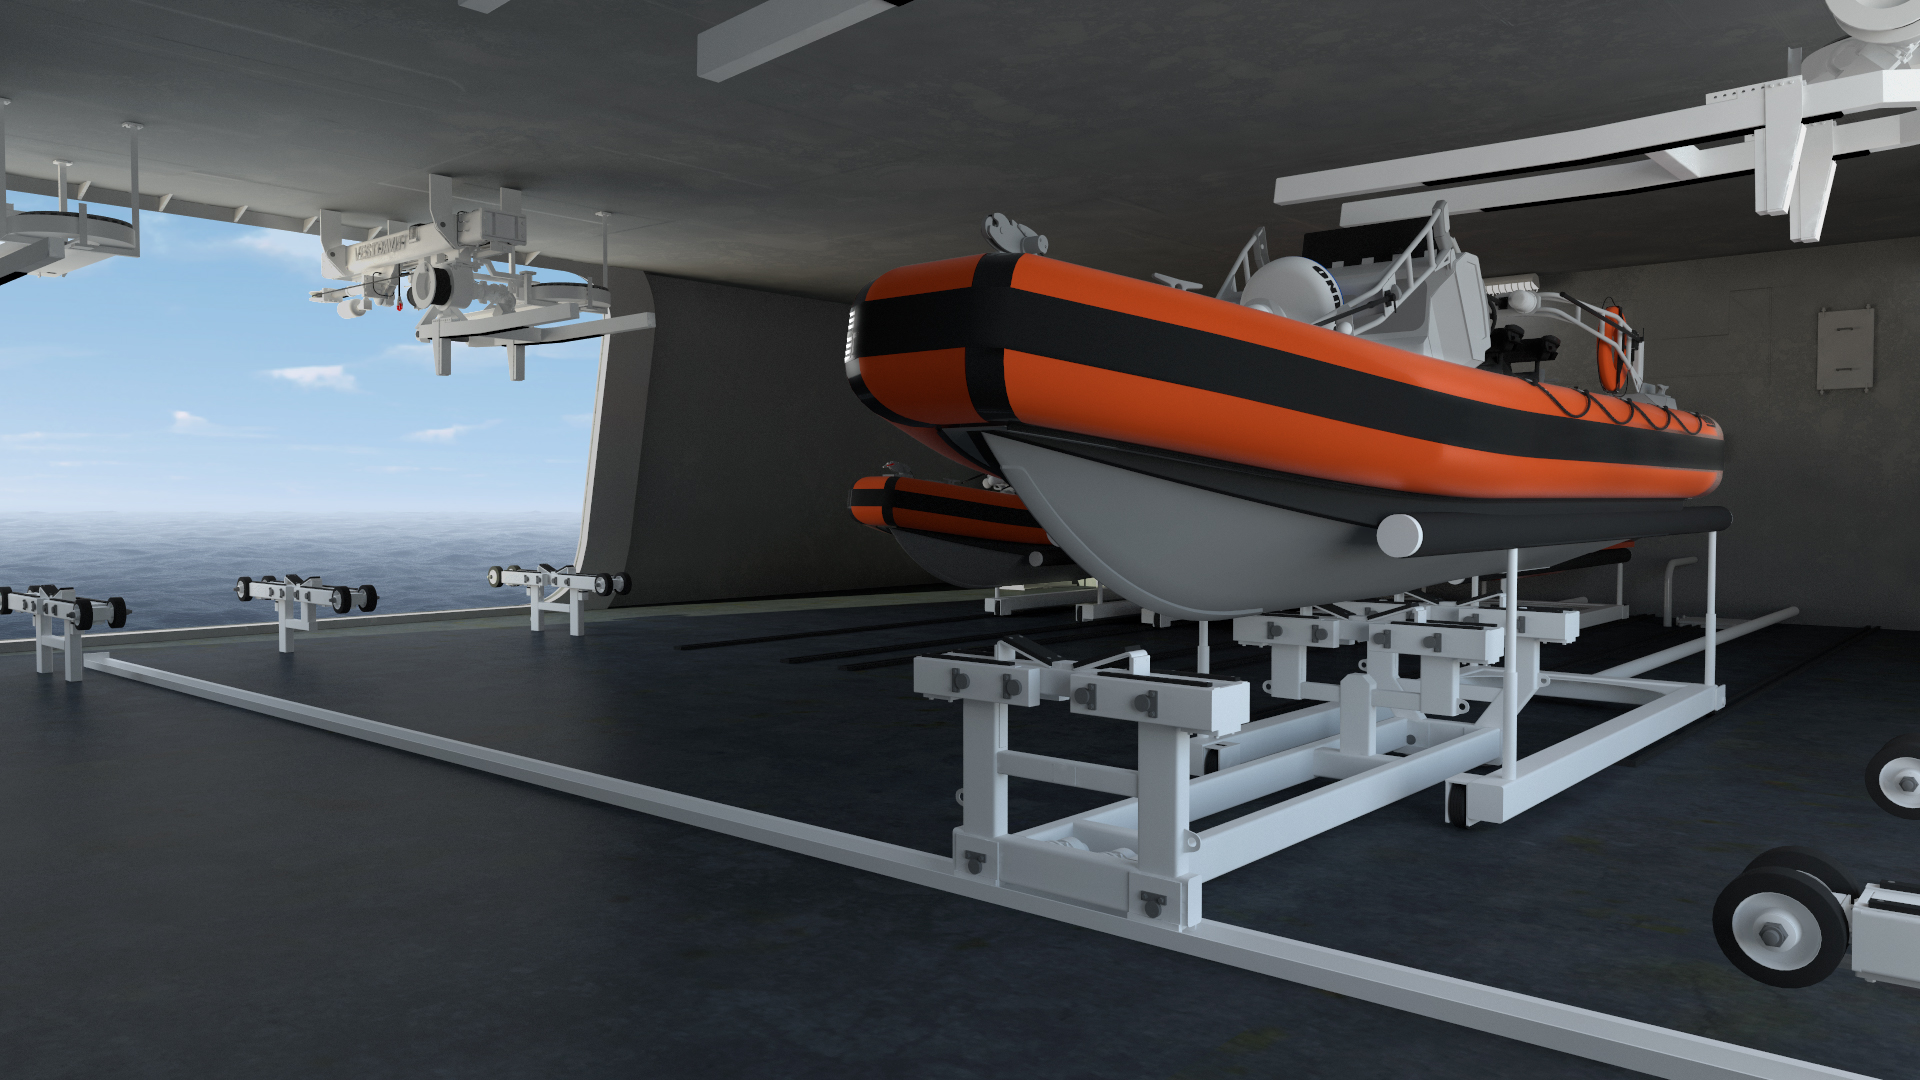 Vestdavit Launches Missionease Multi Boat Handling System